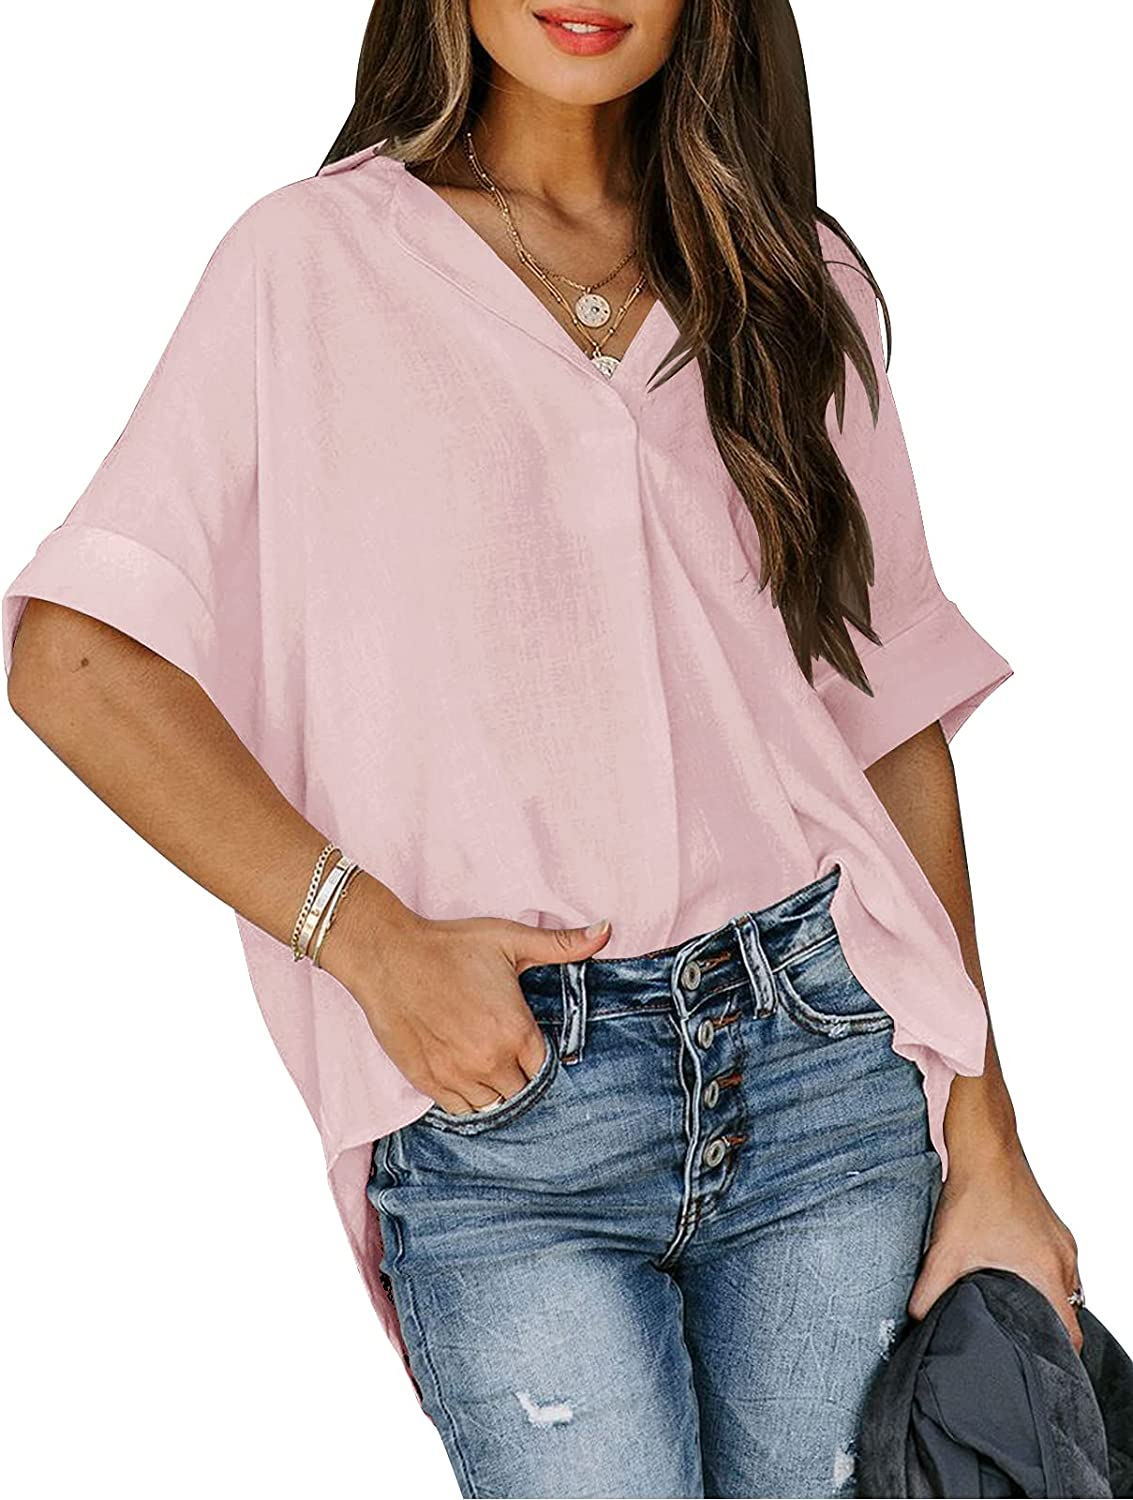 WMZCYXY Women's Casual V Neck Short Sleeve Blouse Button Down Shirts Tops